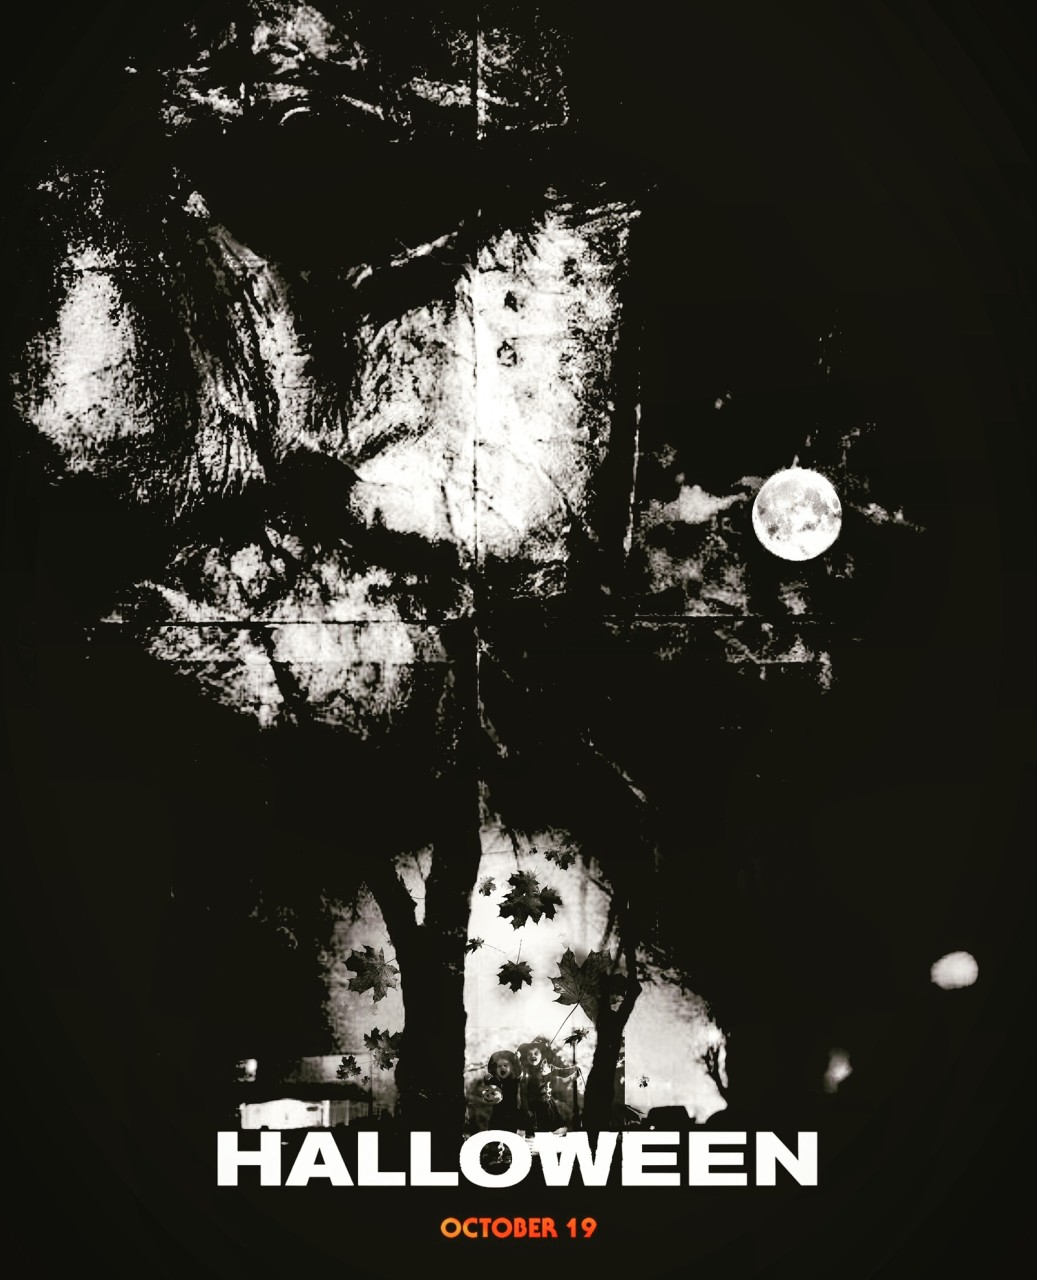 Halloween 2018 Fan Poster.Halloween 2018 Fan Art Poster By Grant Steele